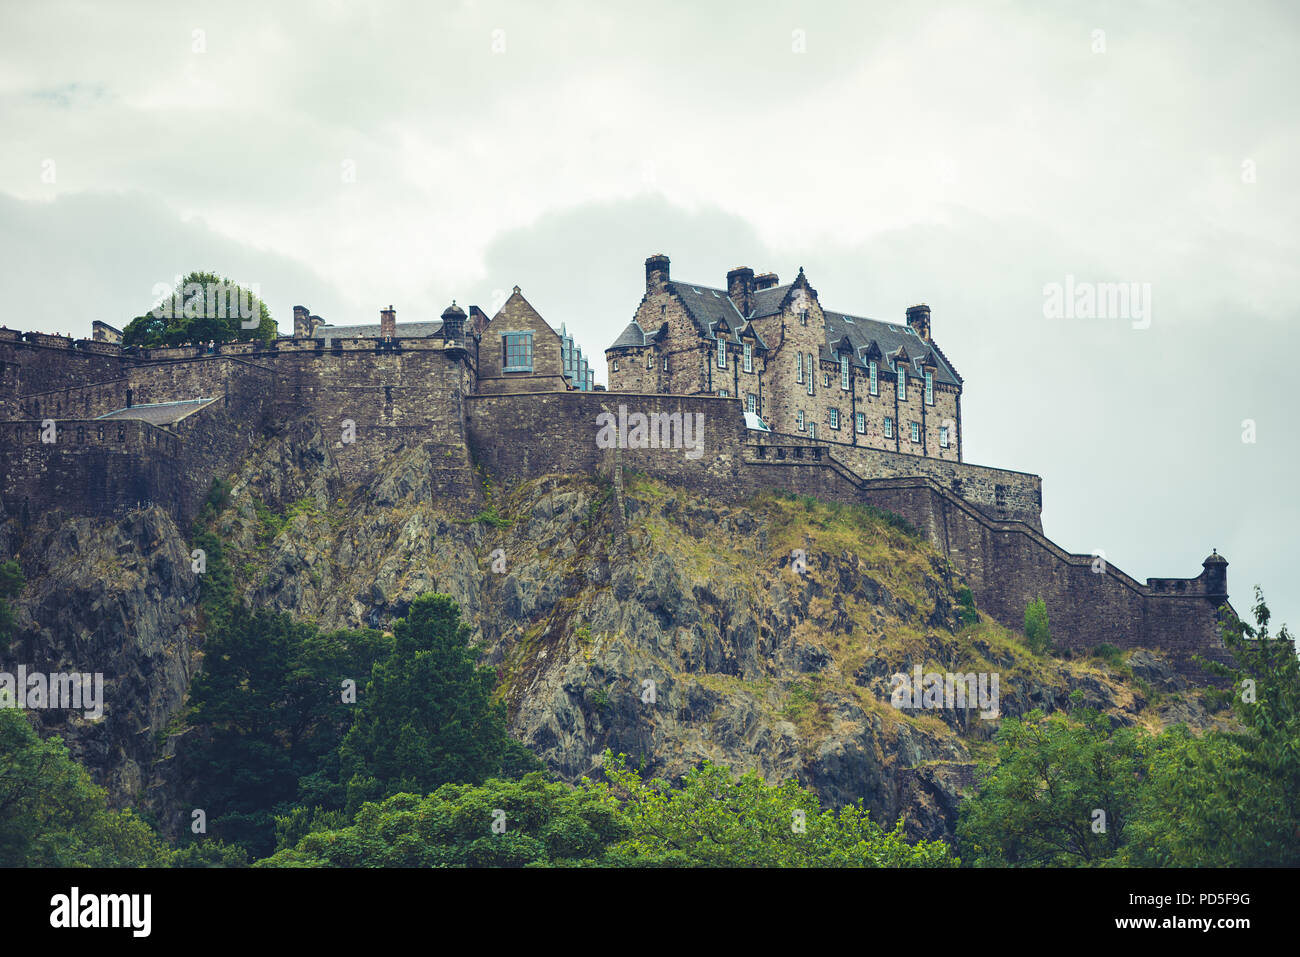 EDINBURGH, SCOTLAND - AUGUST 03, 2018: Busy Streets of Edinburgh, Scotland, UK. The most iconic streets in Scotland and major tourist attractions with - Stock Image